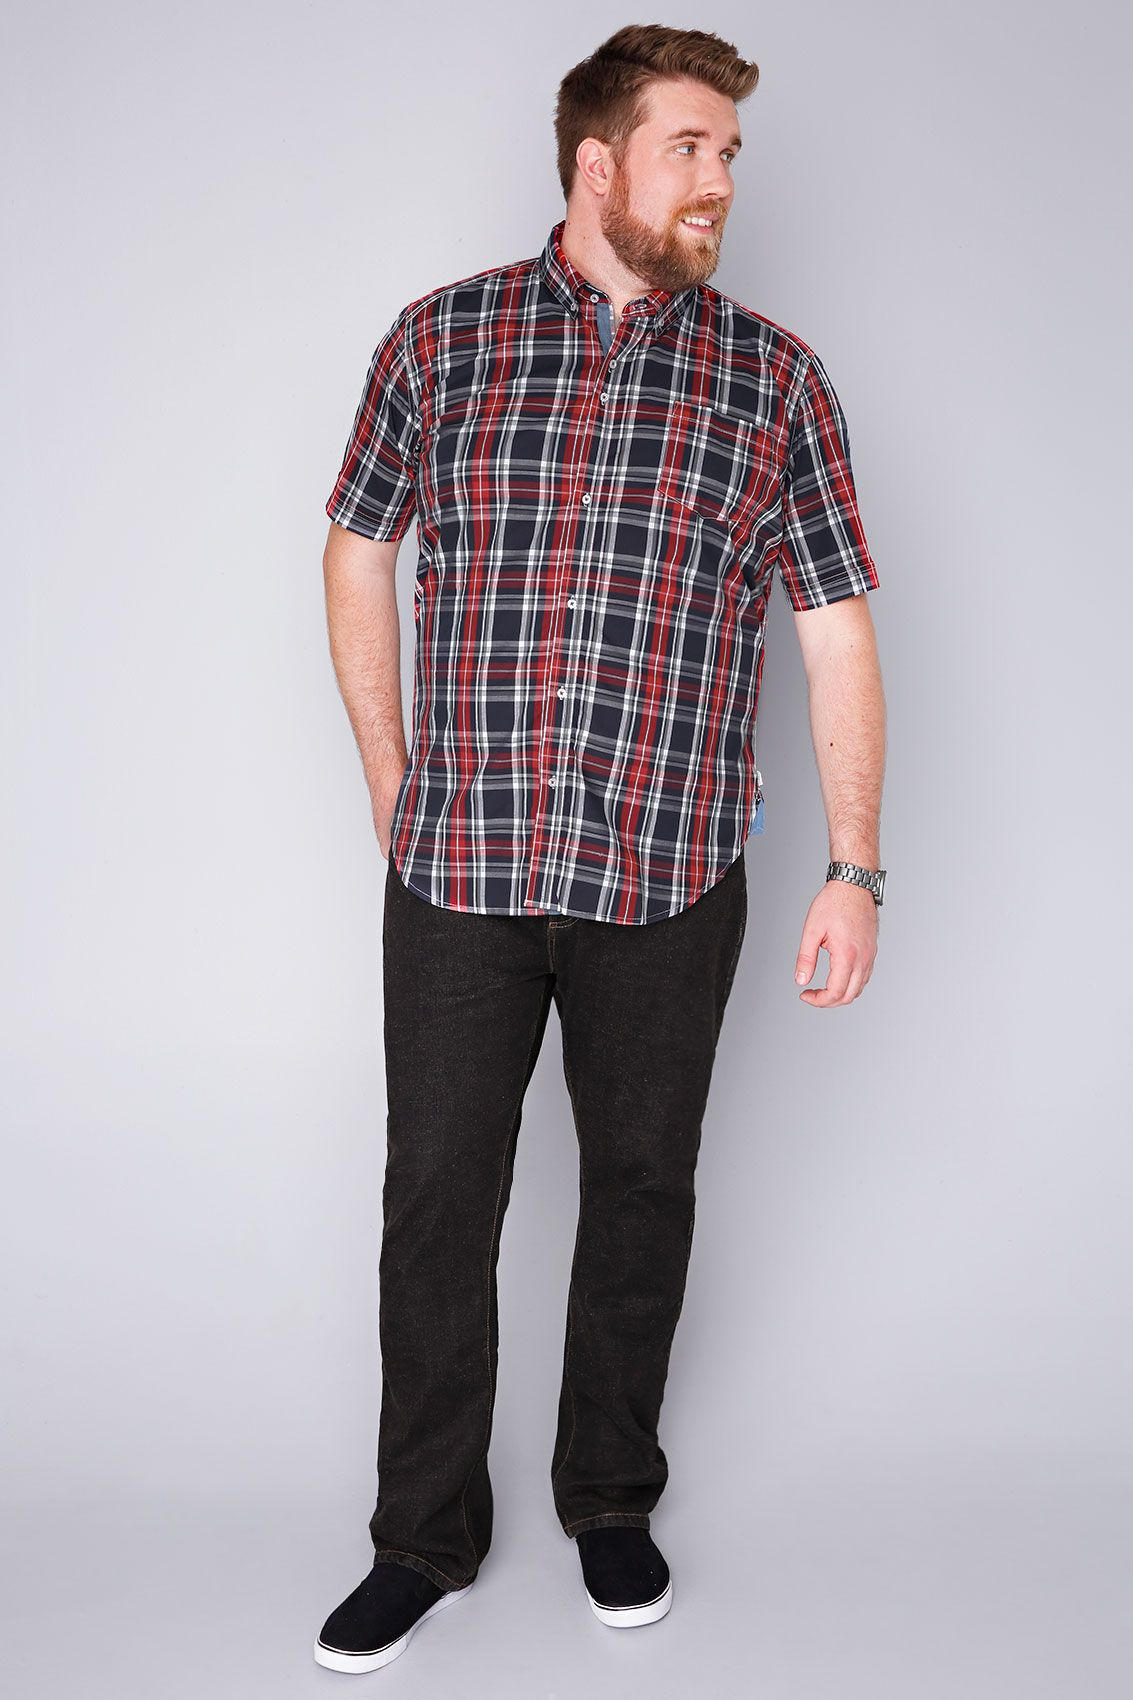 8eb7f3203ce351 BadRhino Red & Navy Checked Short Sleeved Shirt - TALL | Gift ideas ...